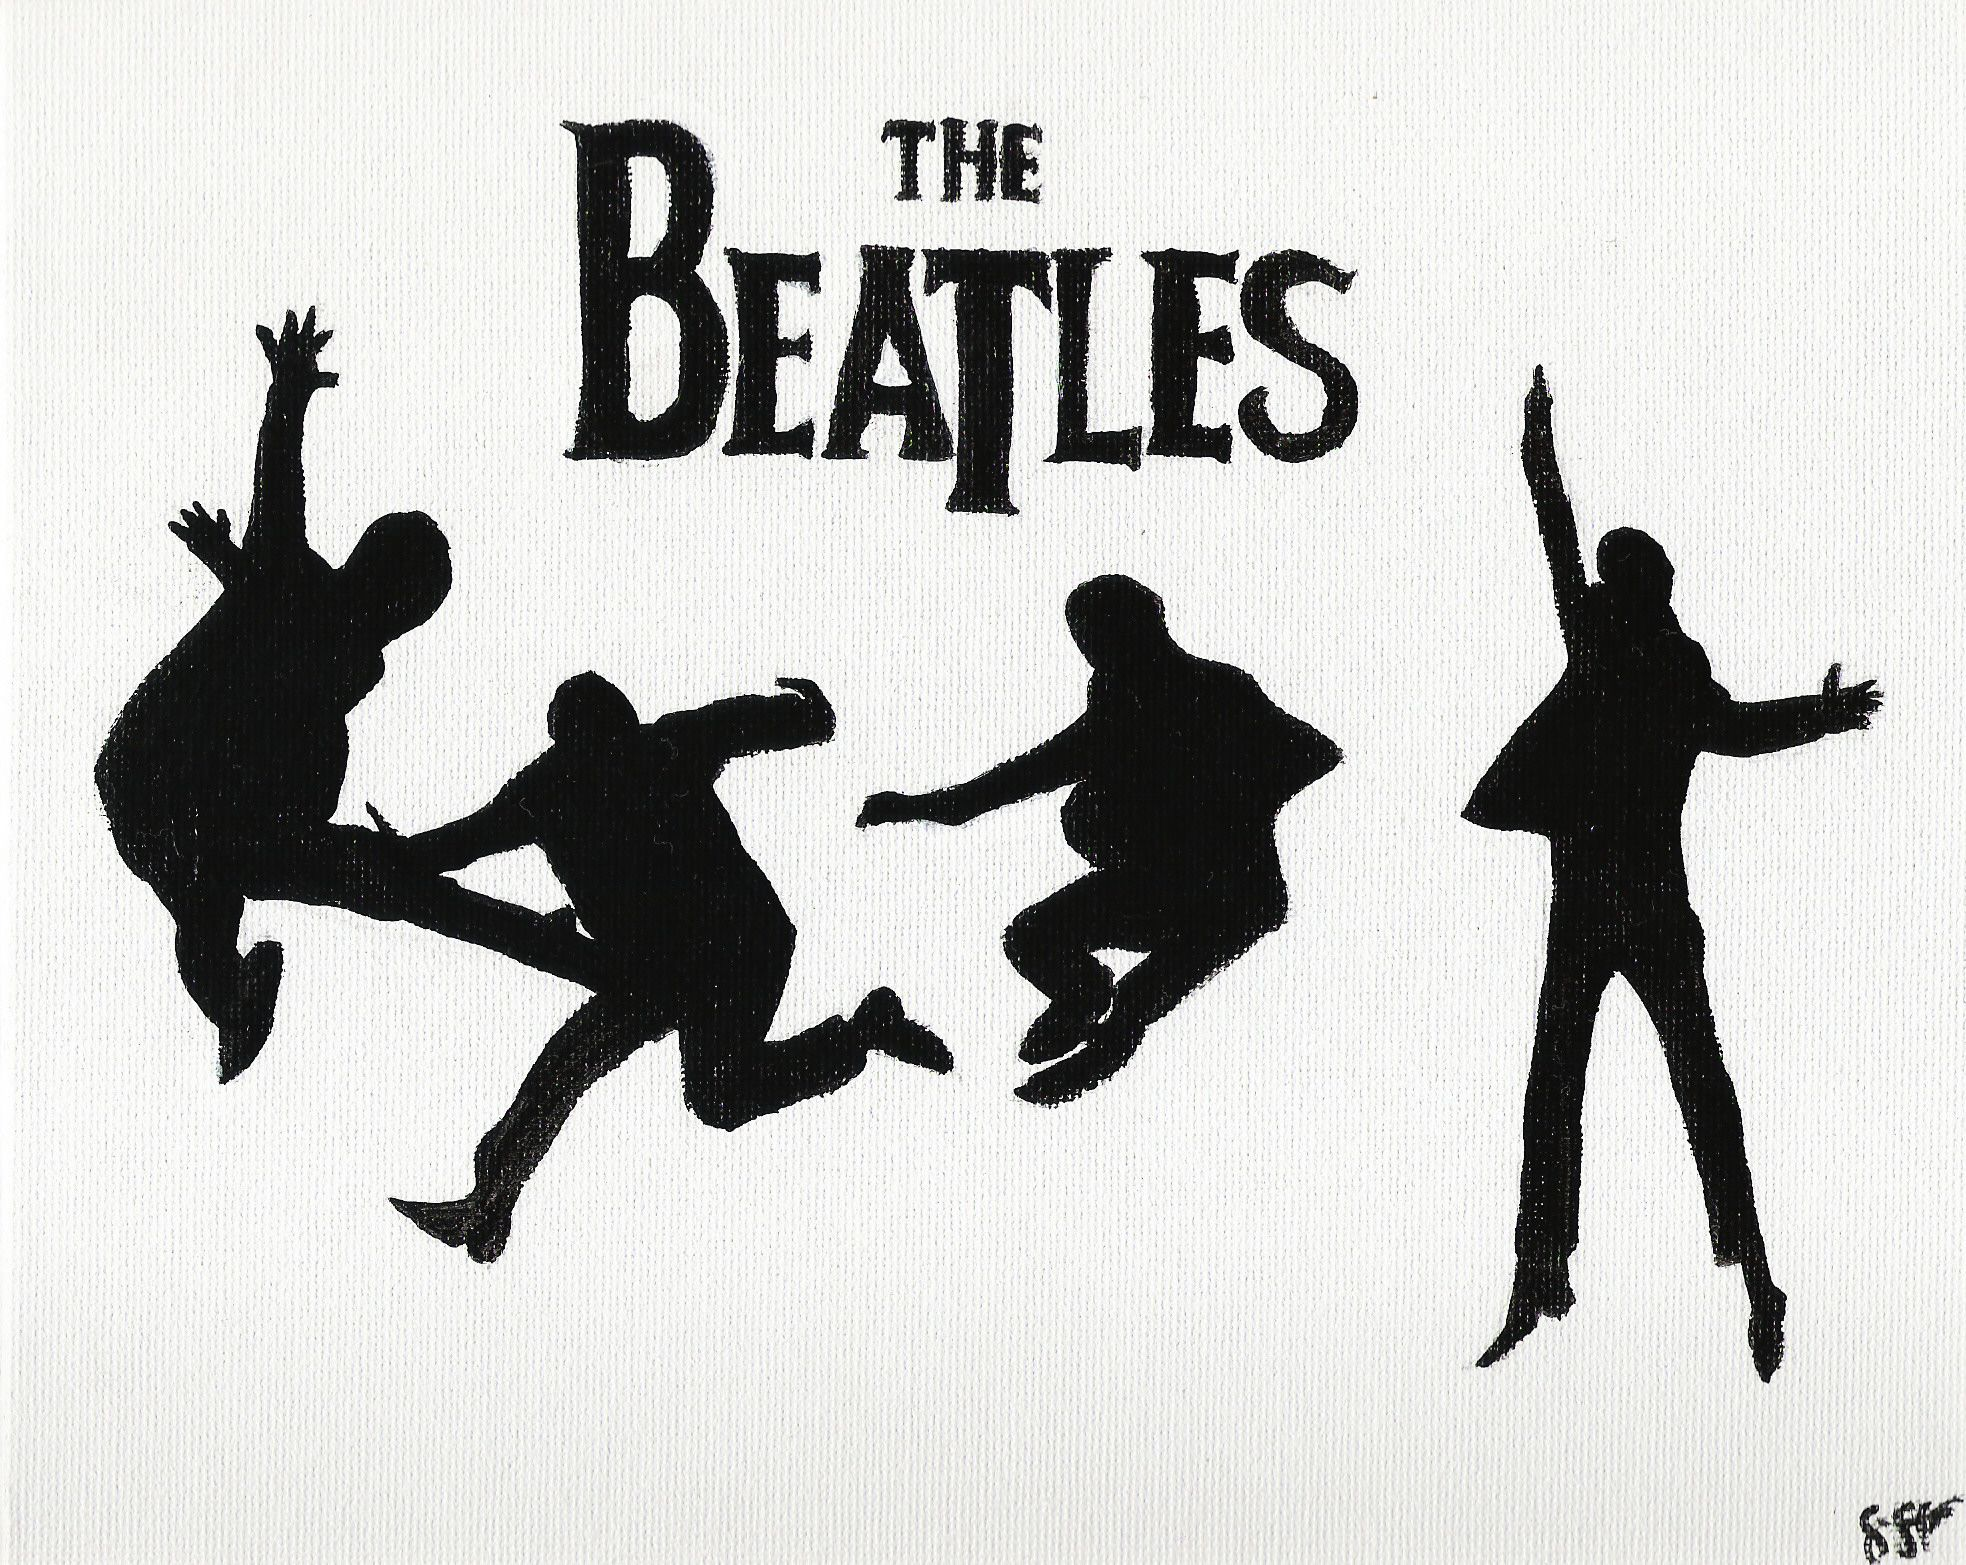 deviantart more like jumping silhouettes thebeatles by shereallean